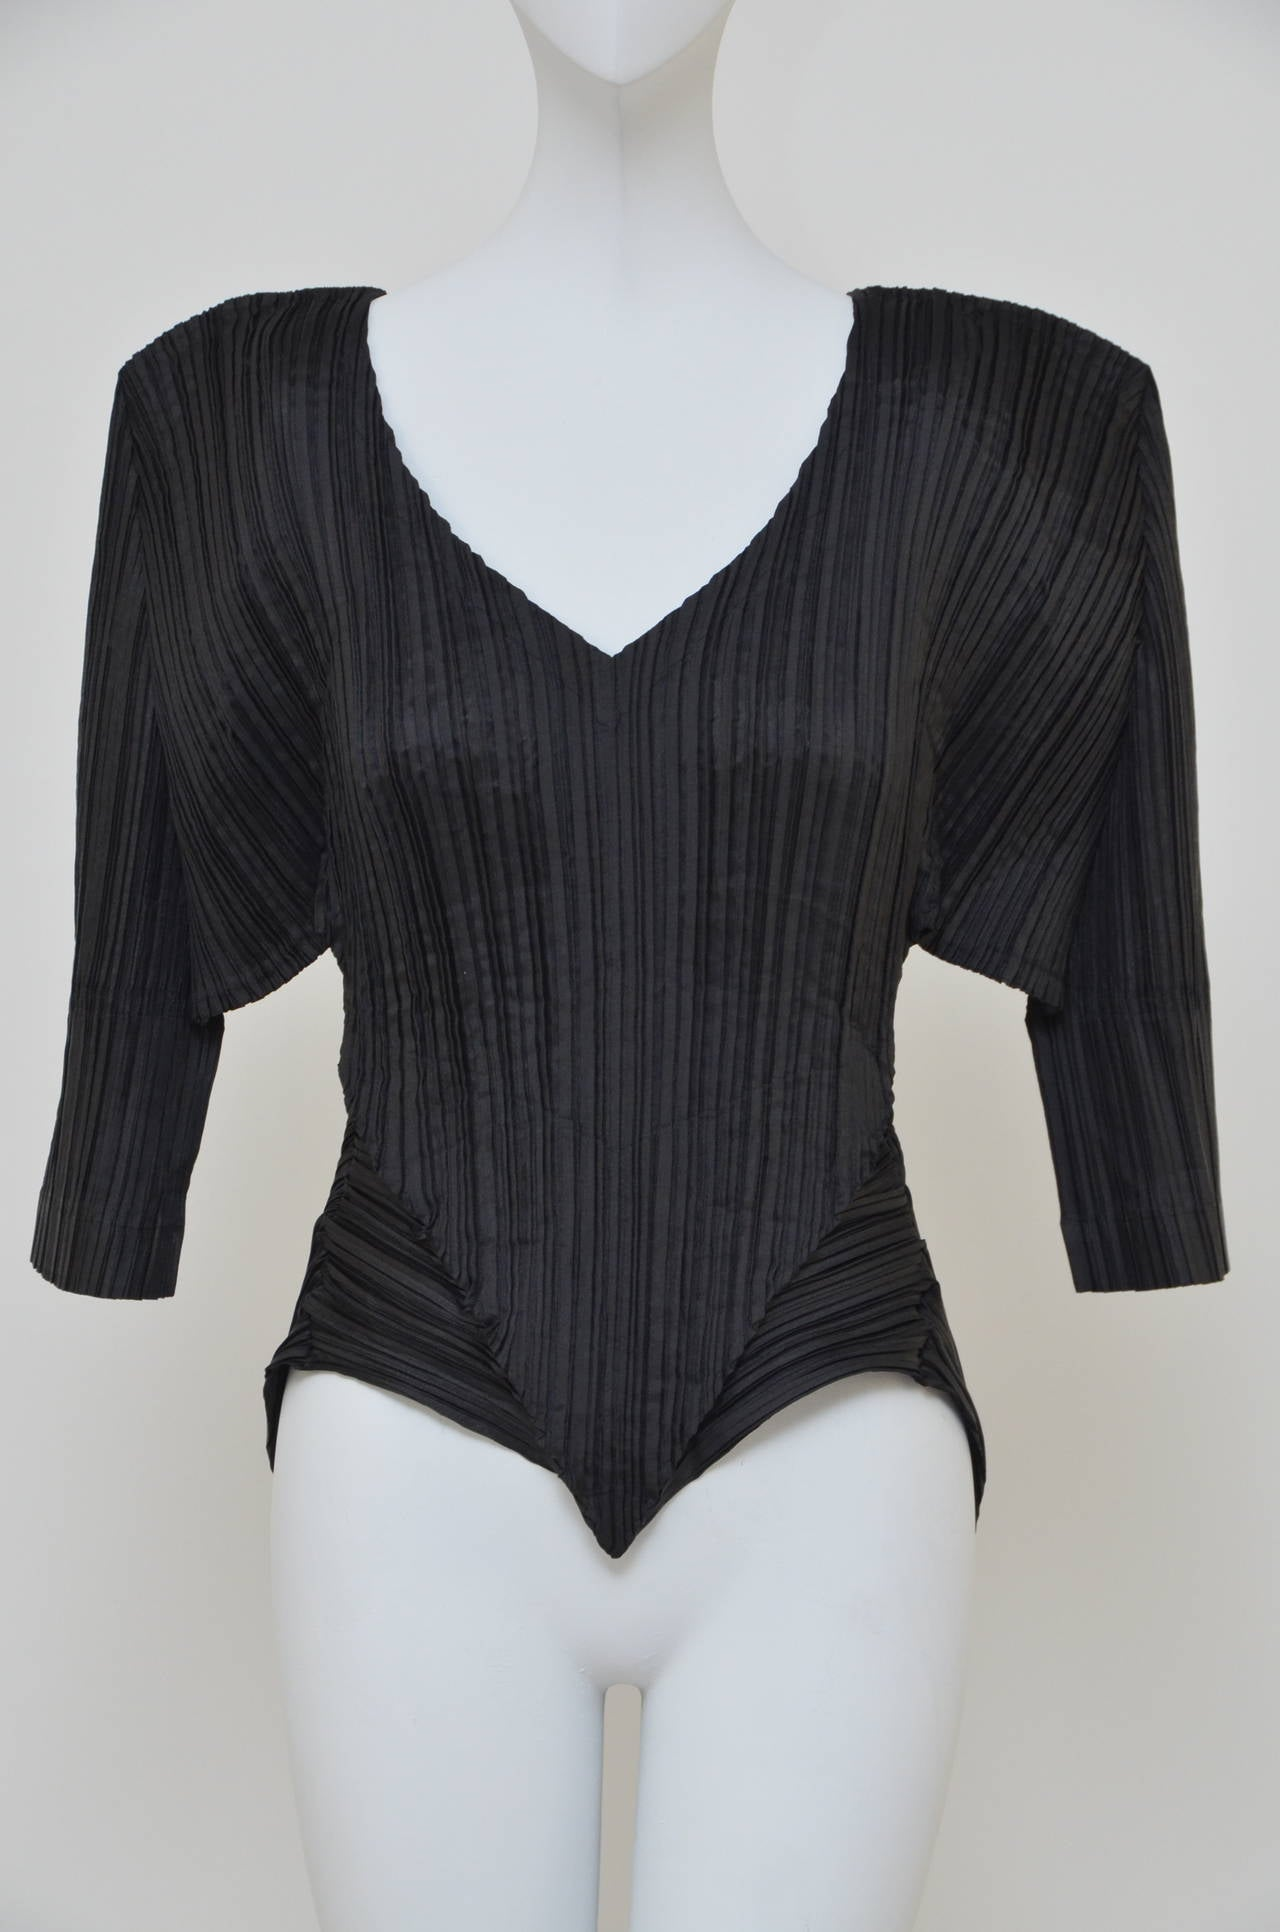 Issey Miyake  Origami Pleat  Top With Tails 1989 For Sale 1